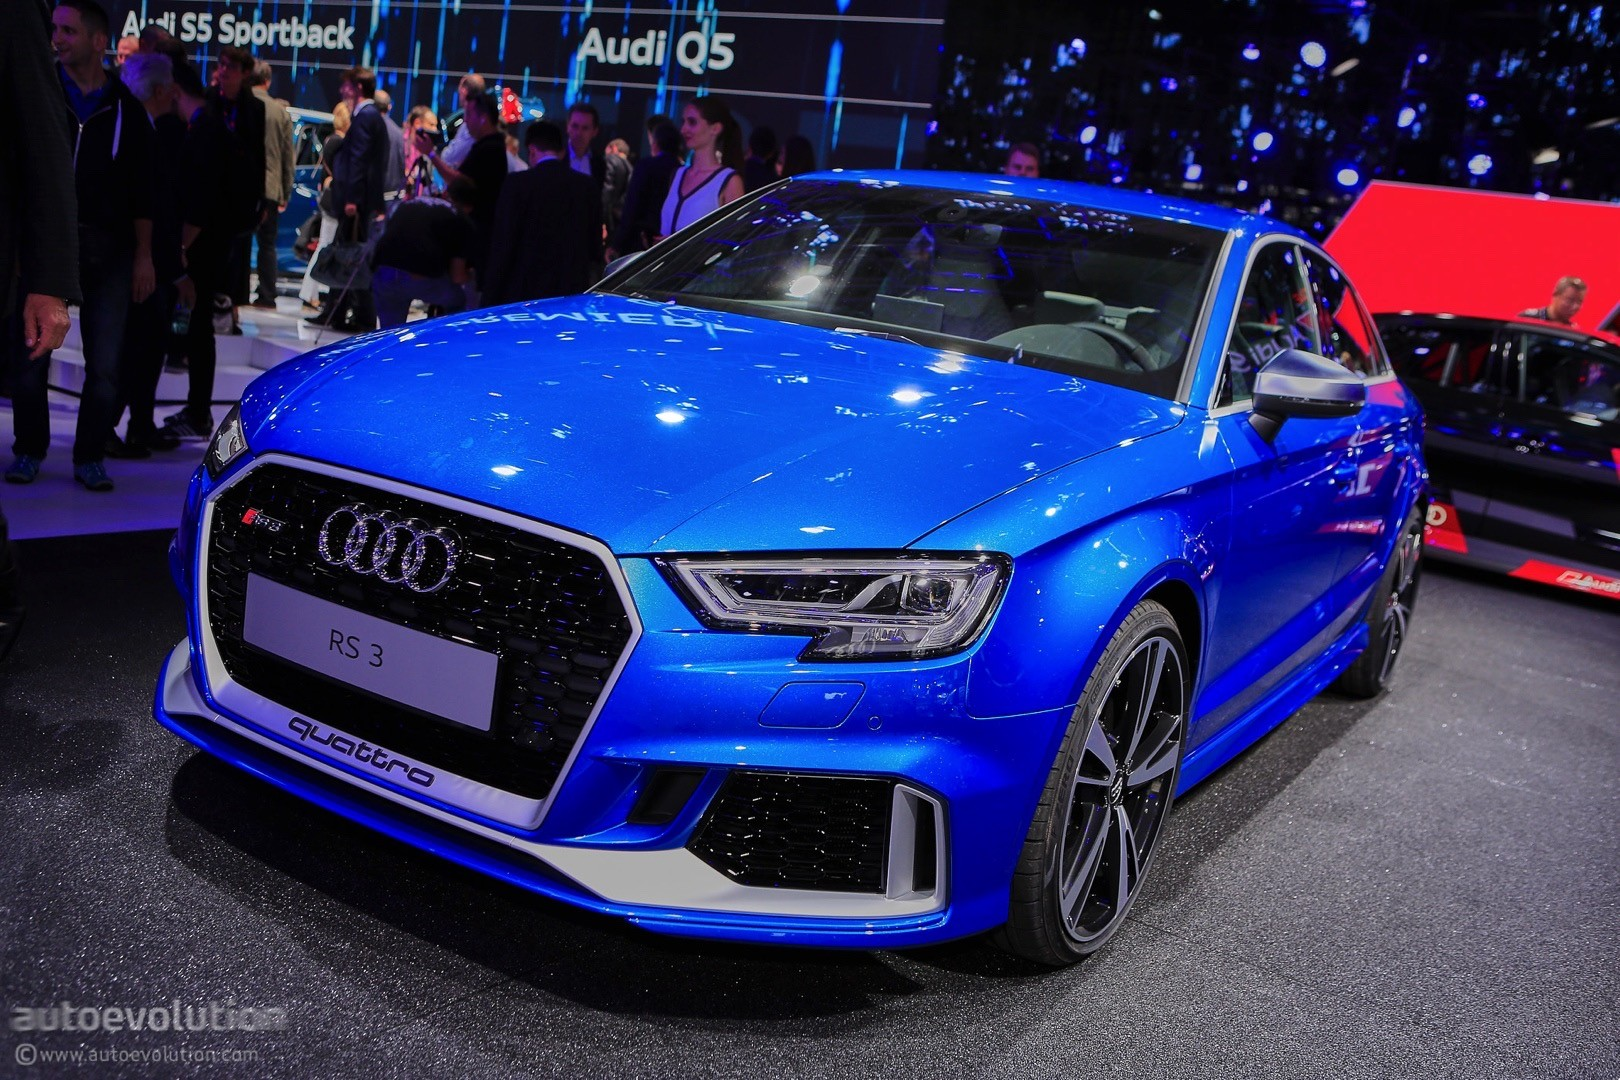 2018 Audi Rs3 Sedan Price Leaked In Canada Should Be Around 54 000 In The Us Autoevolution